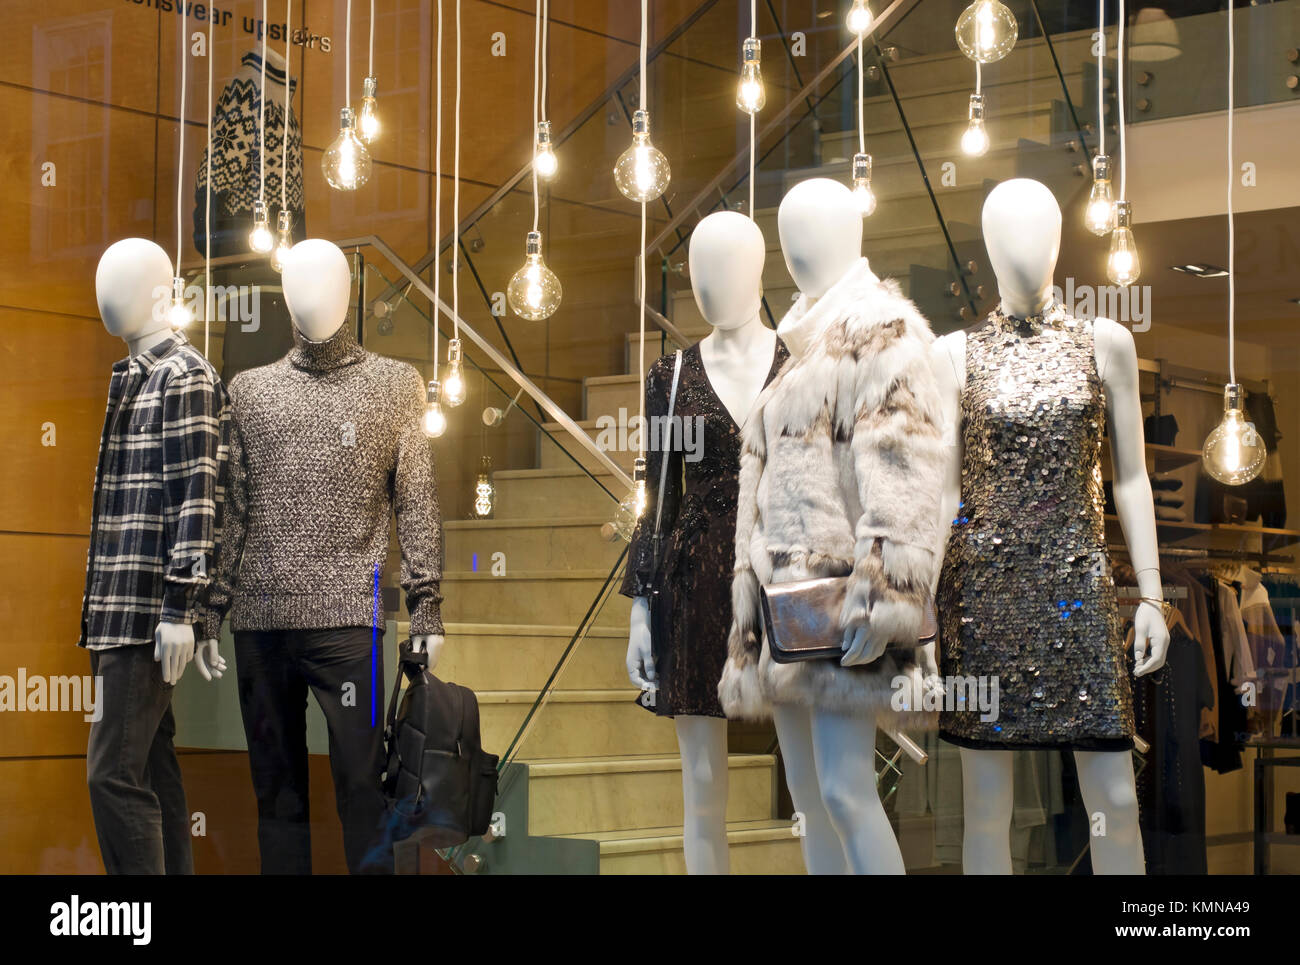 6d7eadd9240 Mannequins in shop store window England UK United Kingdom GB Great Britain  - Stock Image